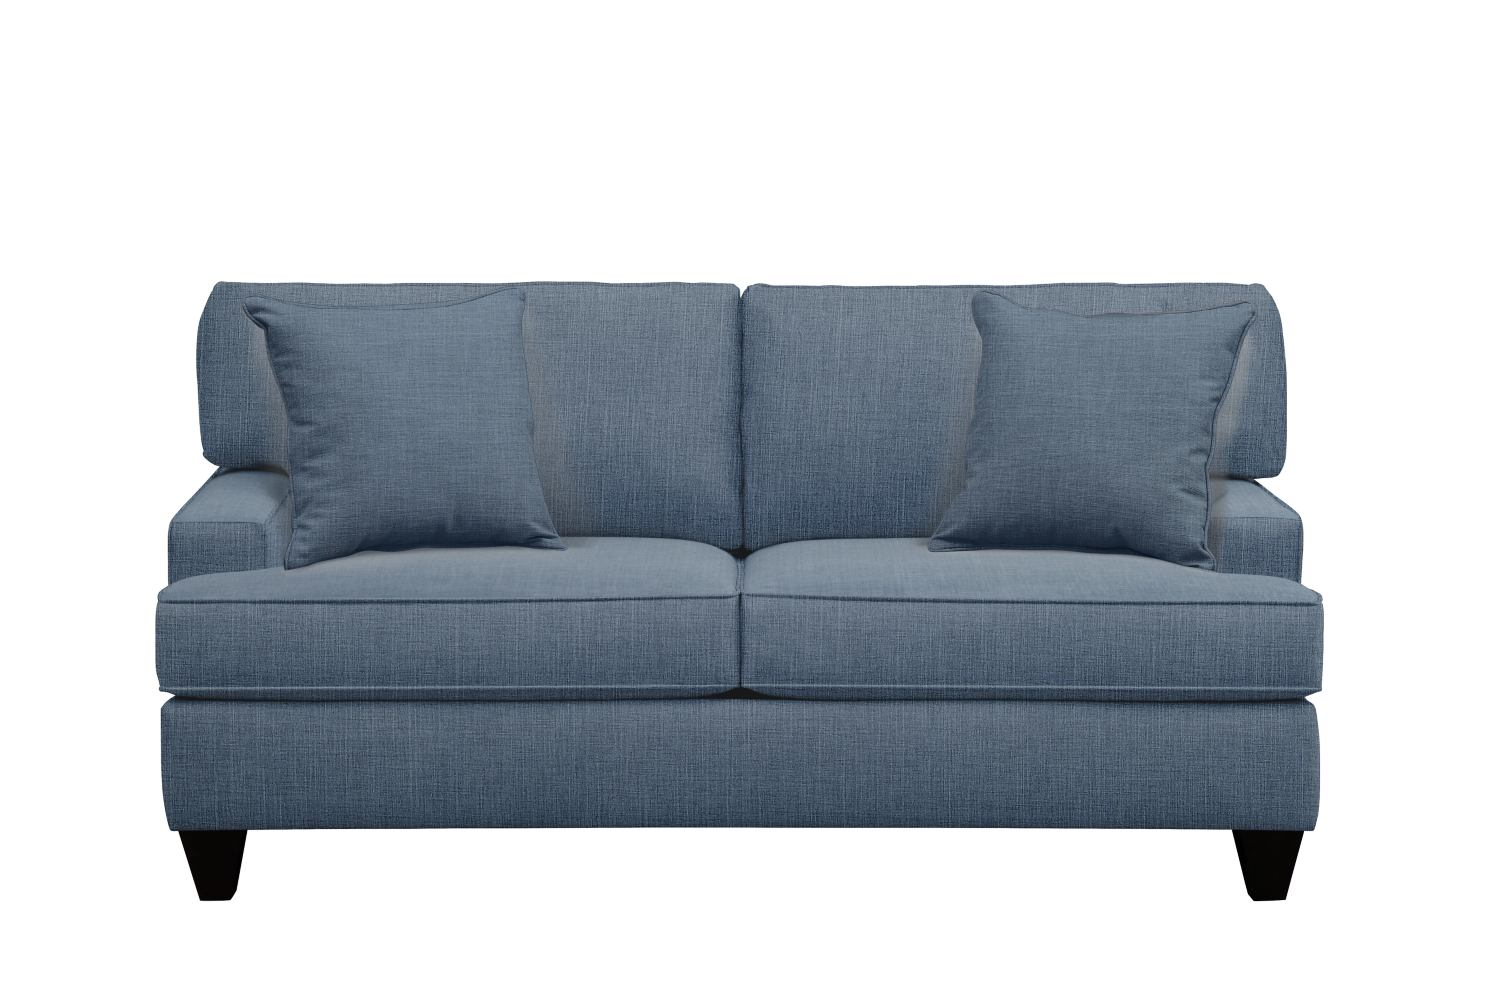 "Living Room Furniture - Conner Track Arm Sofa 75"" Milford II Indigo  w/ Milford II Indigo Pillow"